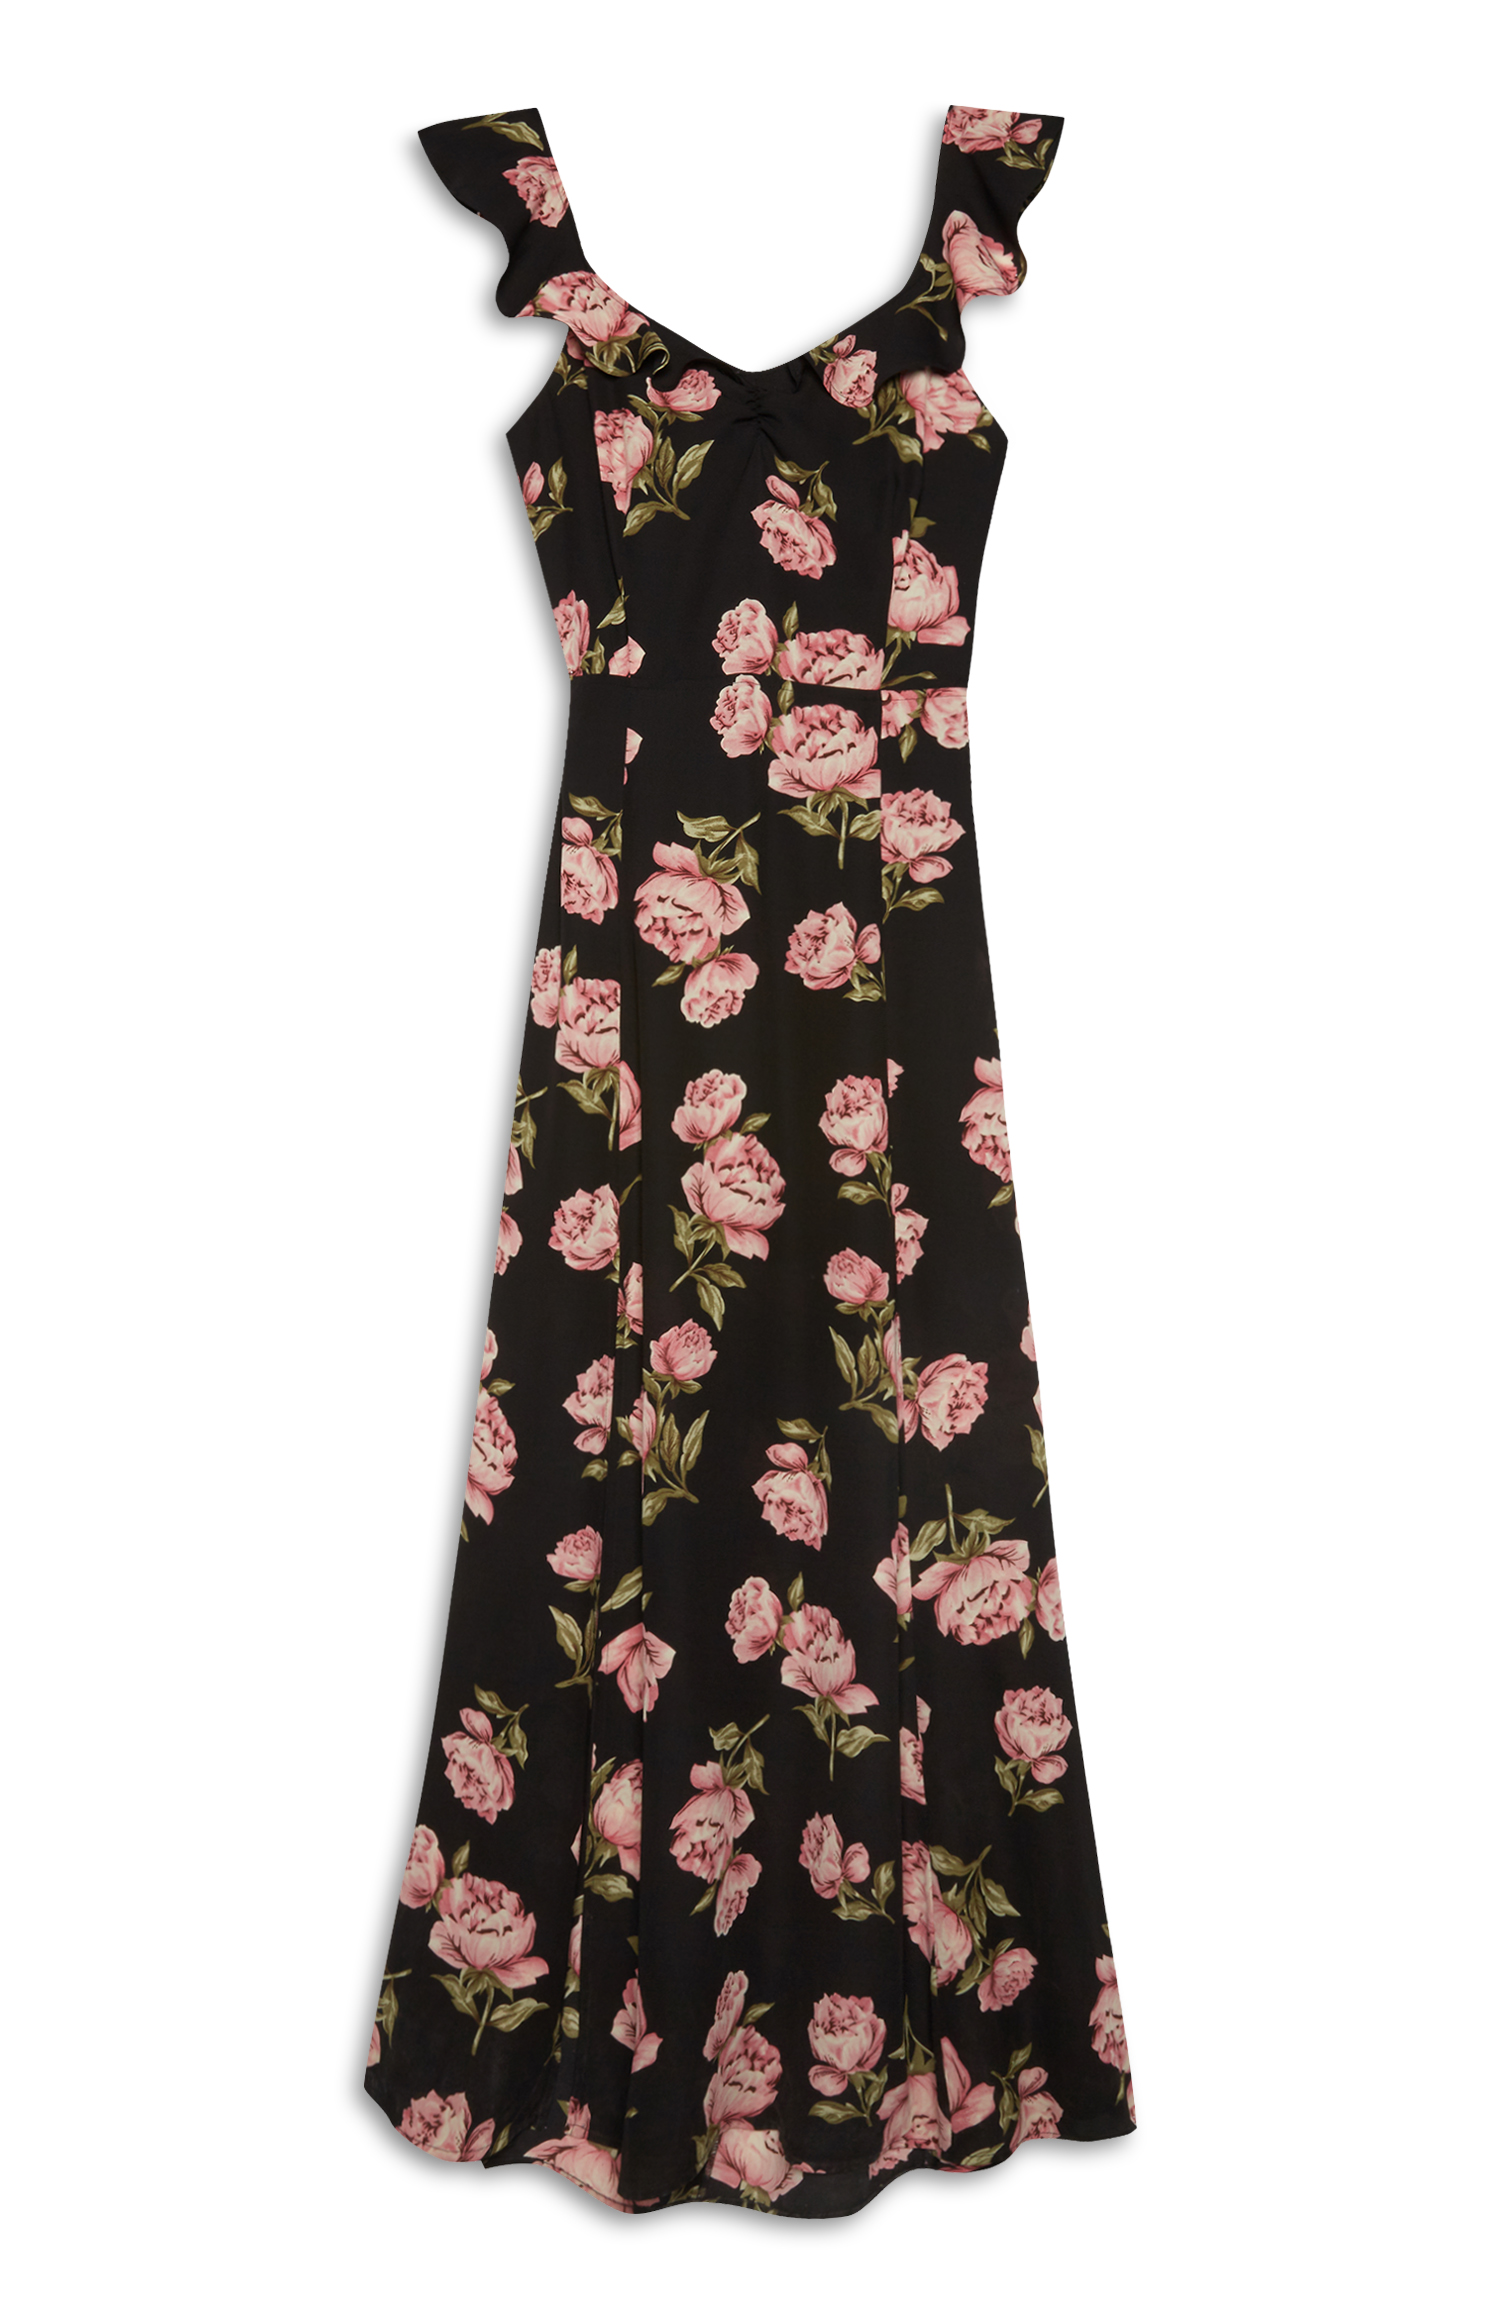 Yellow Floral Dress Primark